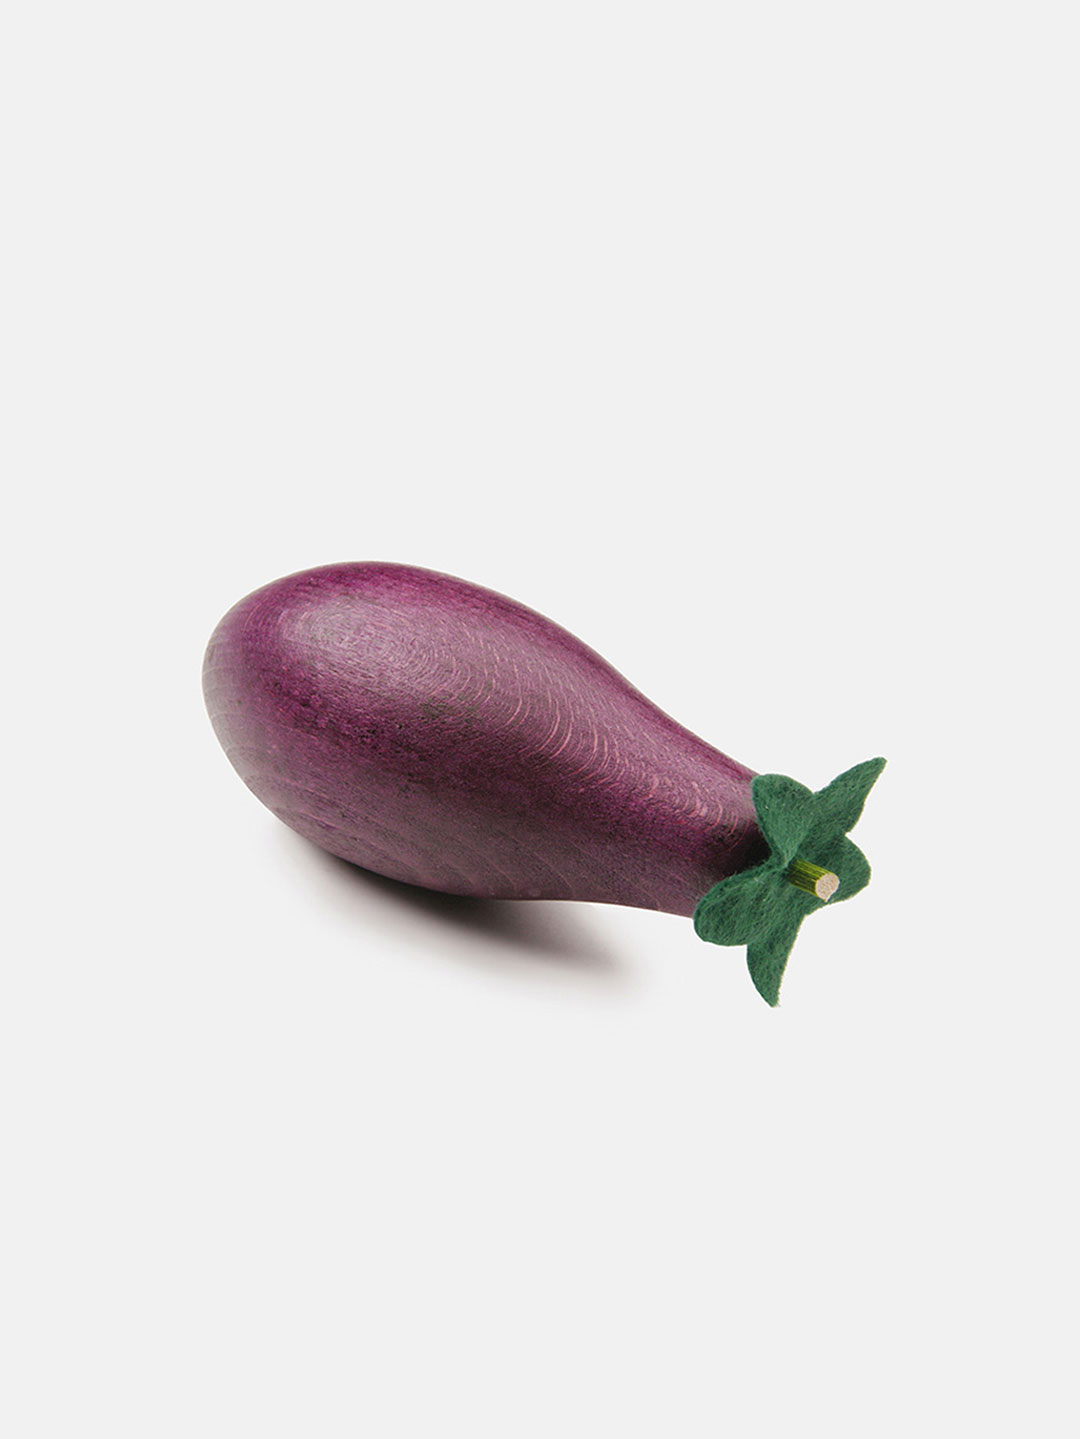 Wooden Vegetable - Eggplant